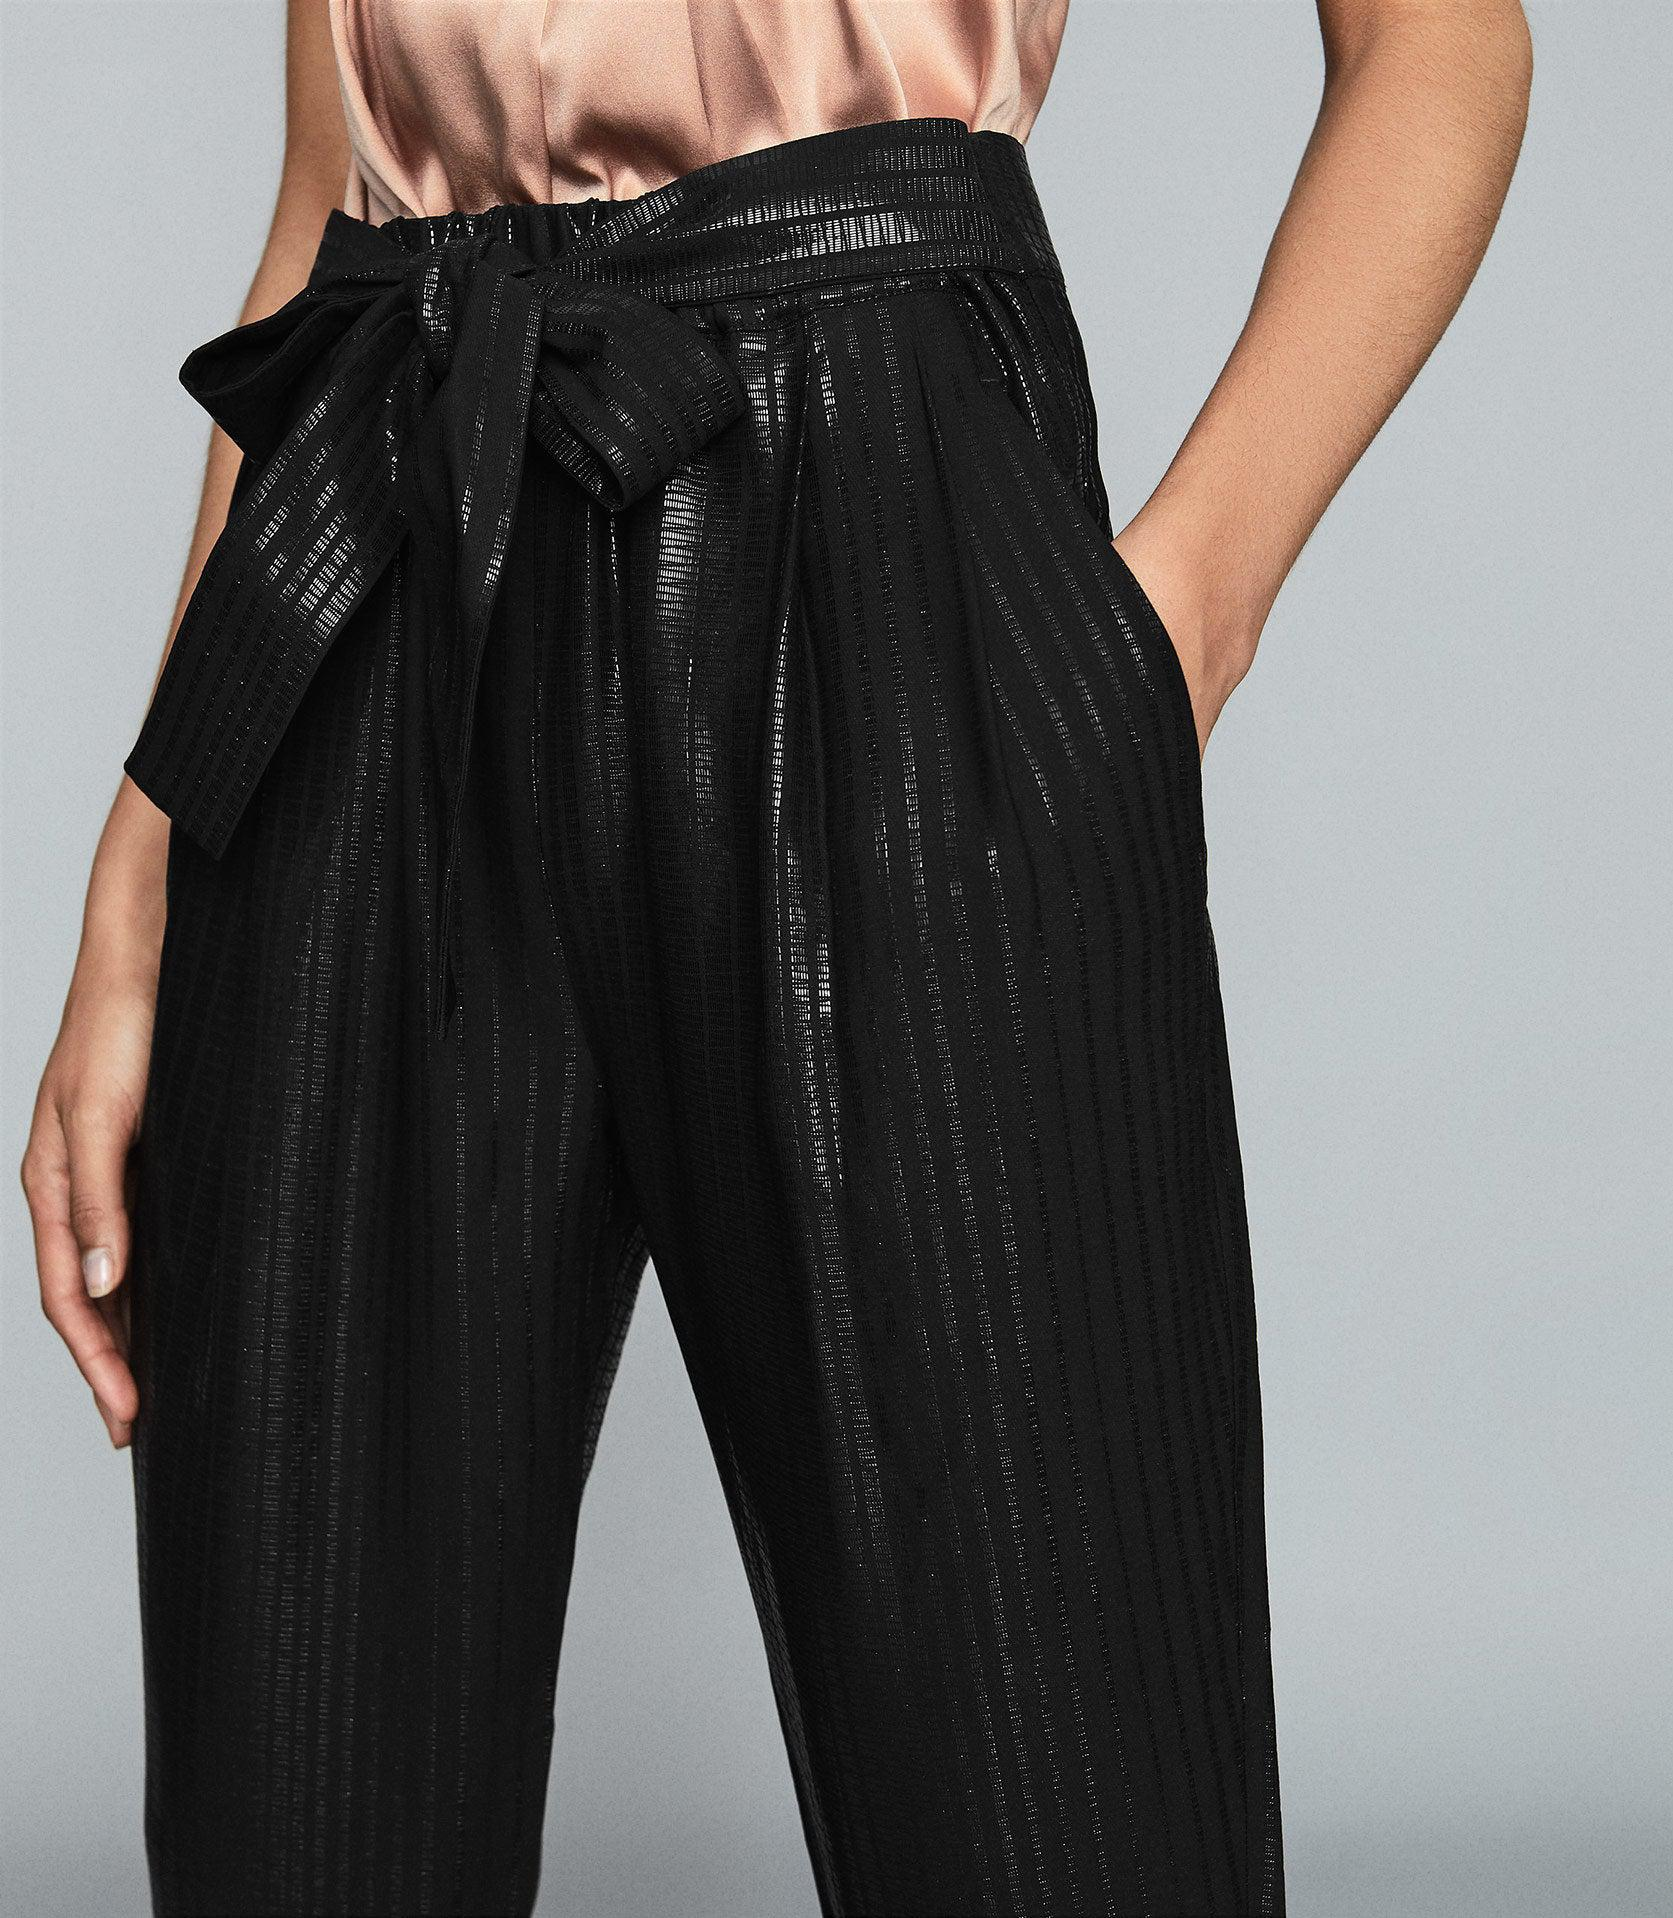 PENNIE - TAPERED SHIMMER TROUSERS 4